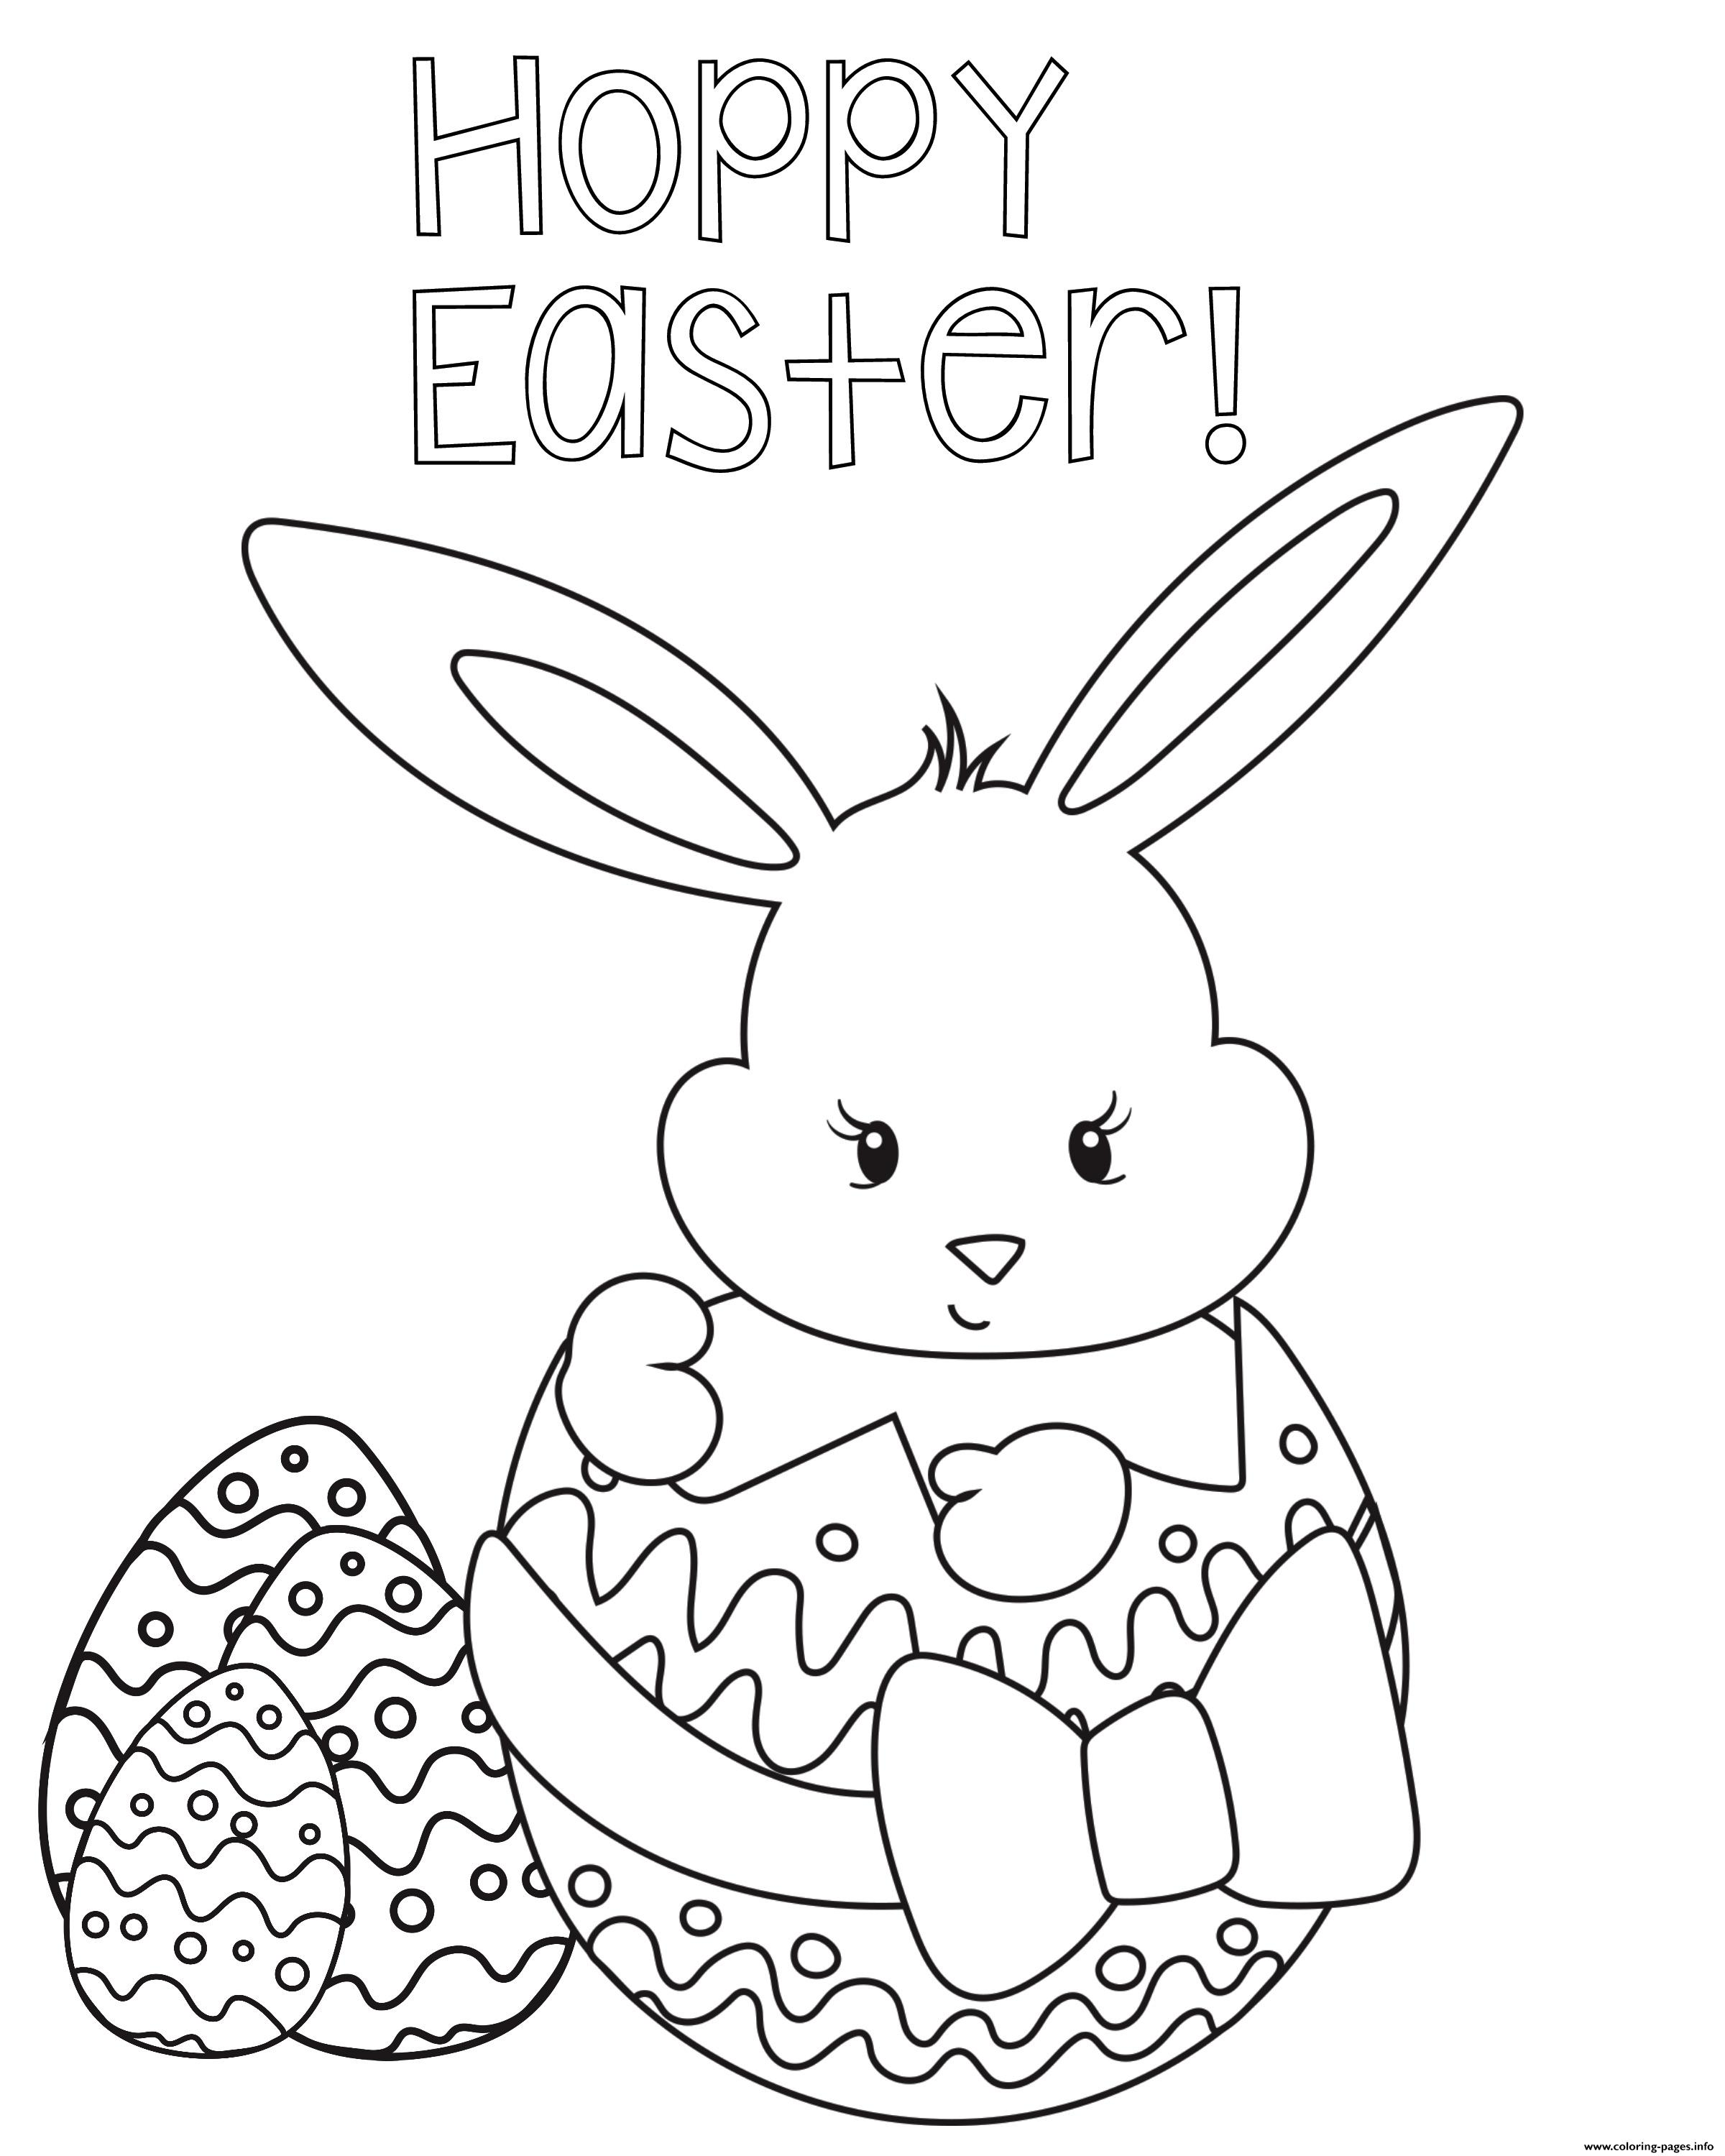 Happy Easter Egg Rabbit Coloring Pages Printable